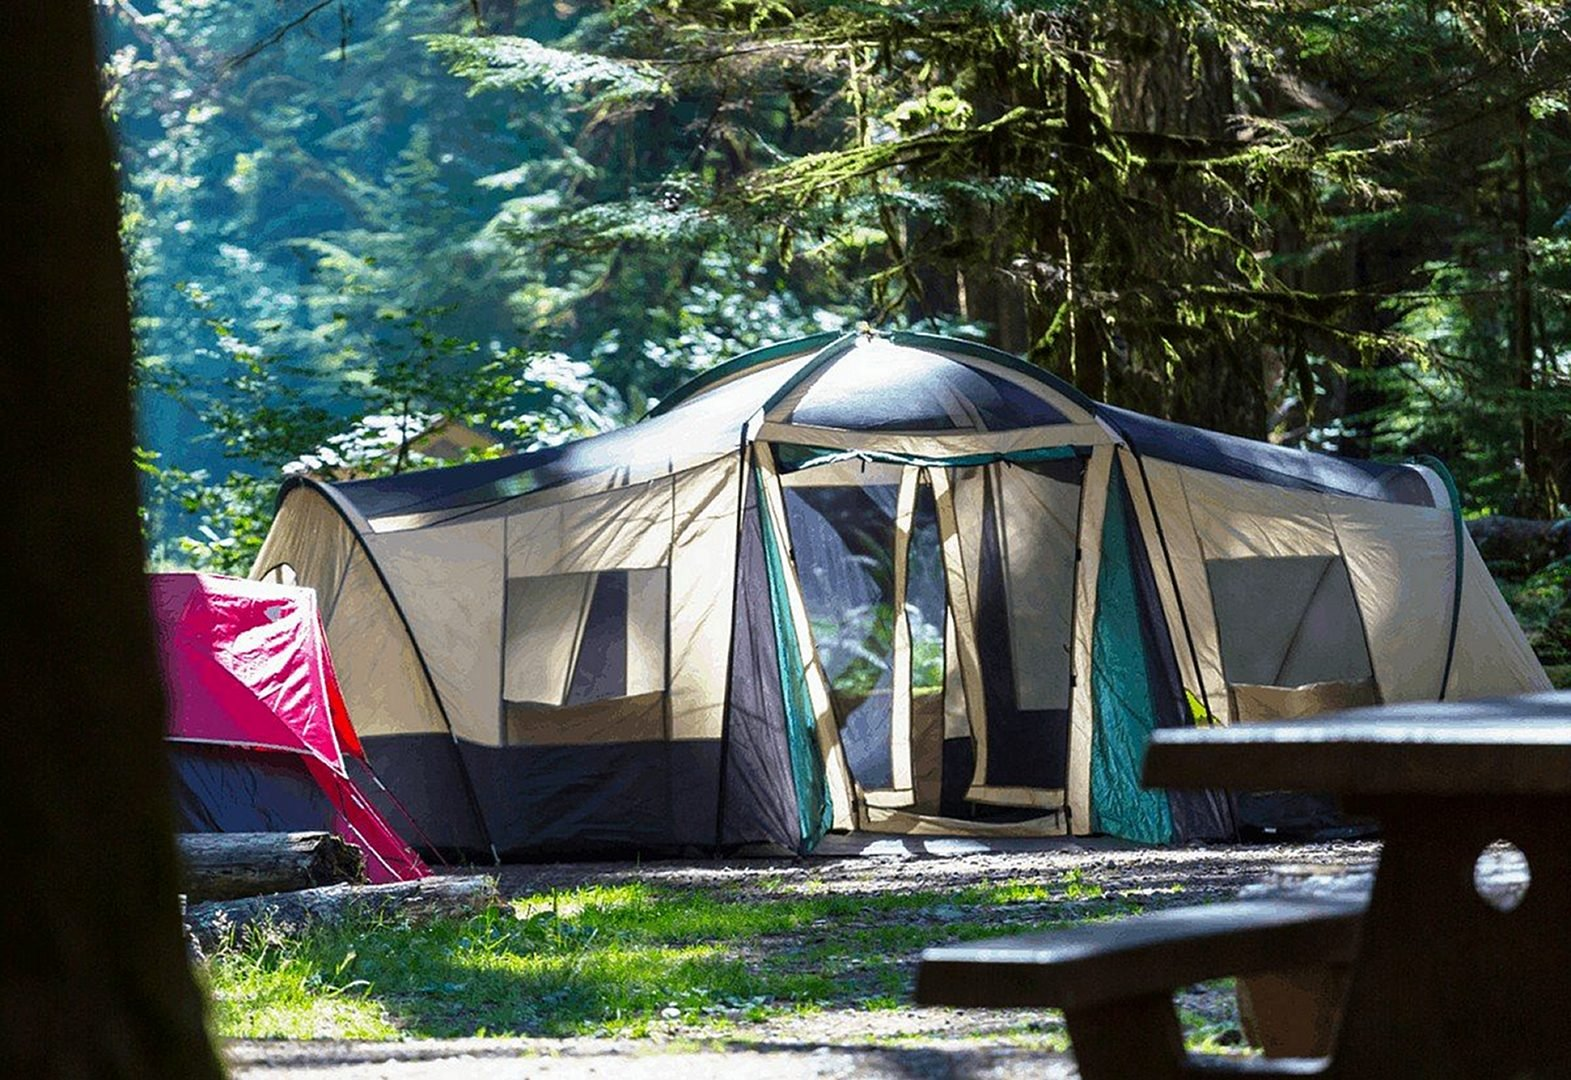 Large 8-person cabin tent in the woods